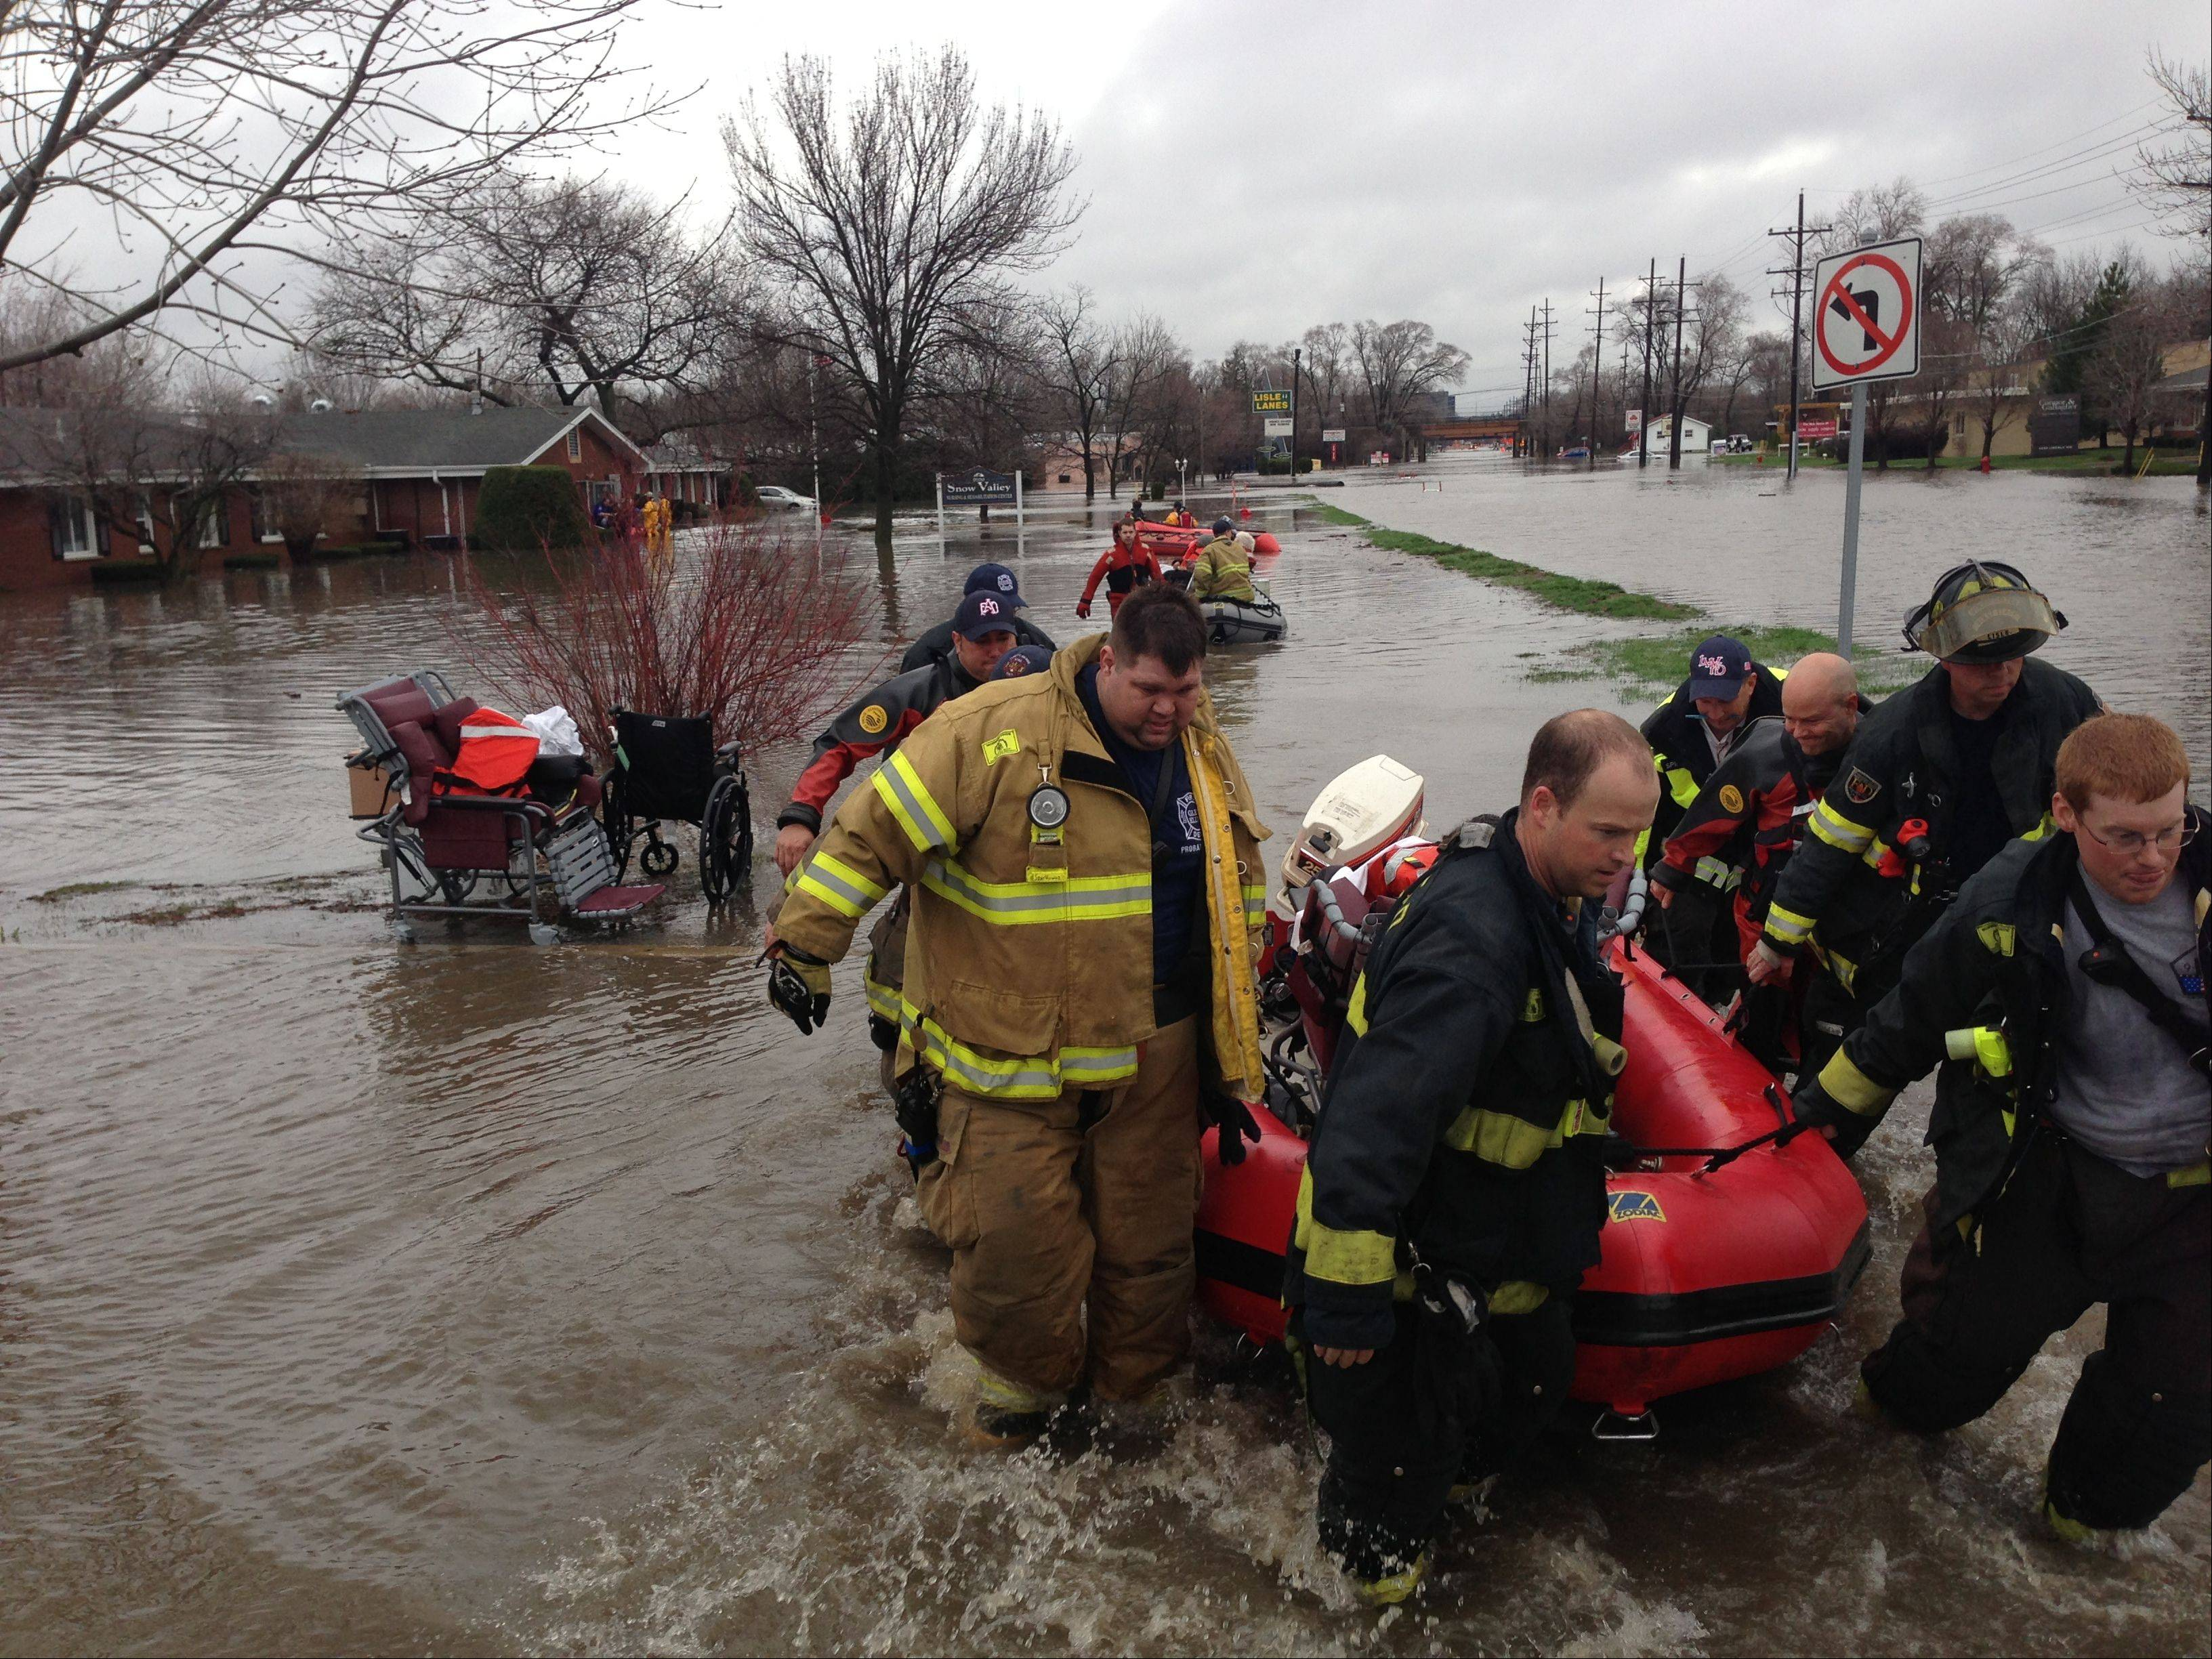 Municipalities in DuPage County will learn next week whether the federal government plans to reimburse some of their costs related to the flood response, such as expenses for overtime and equipment.